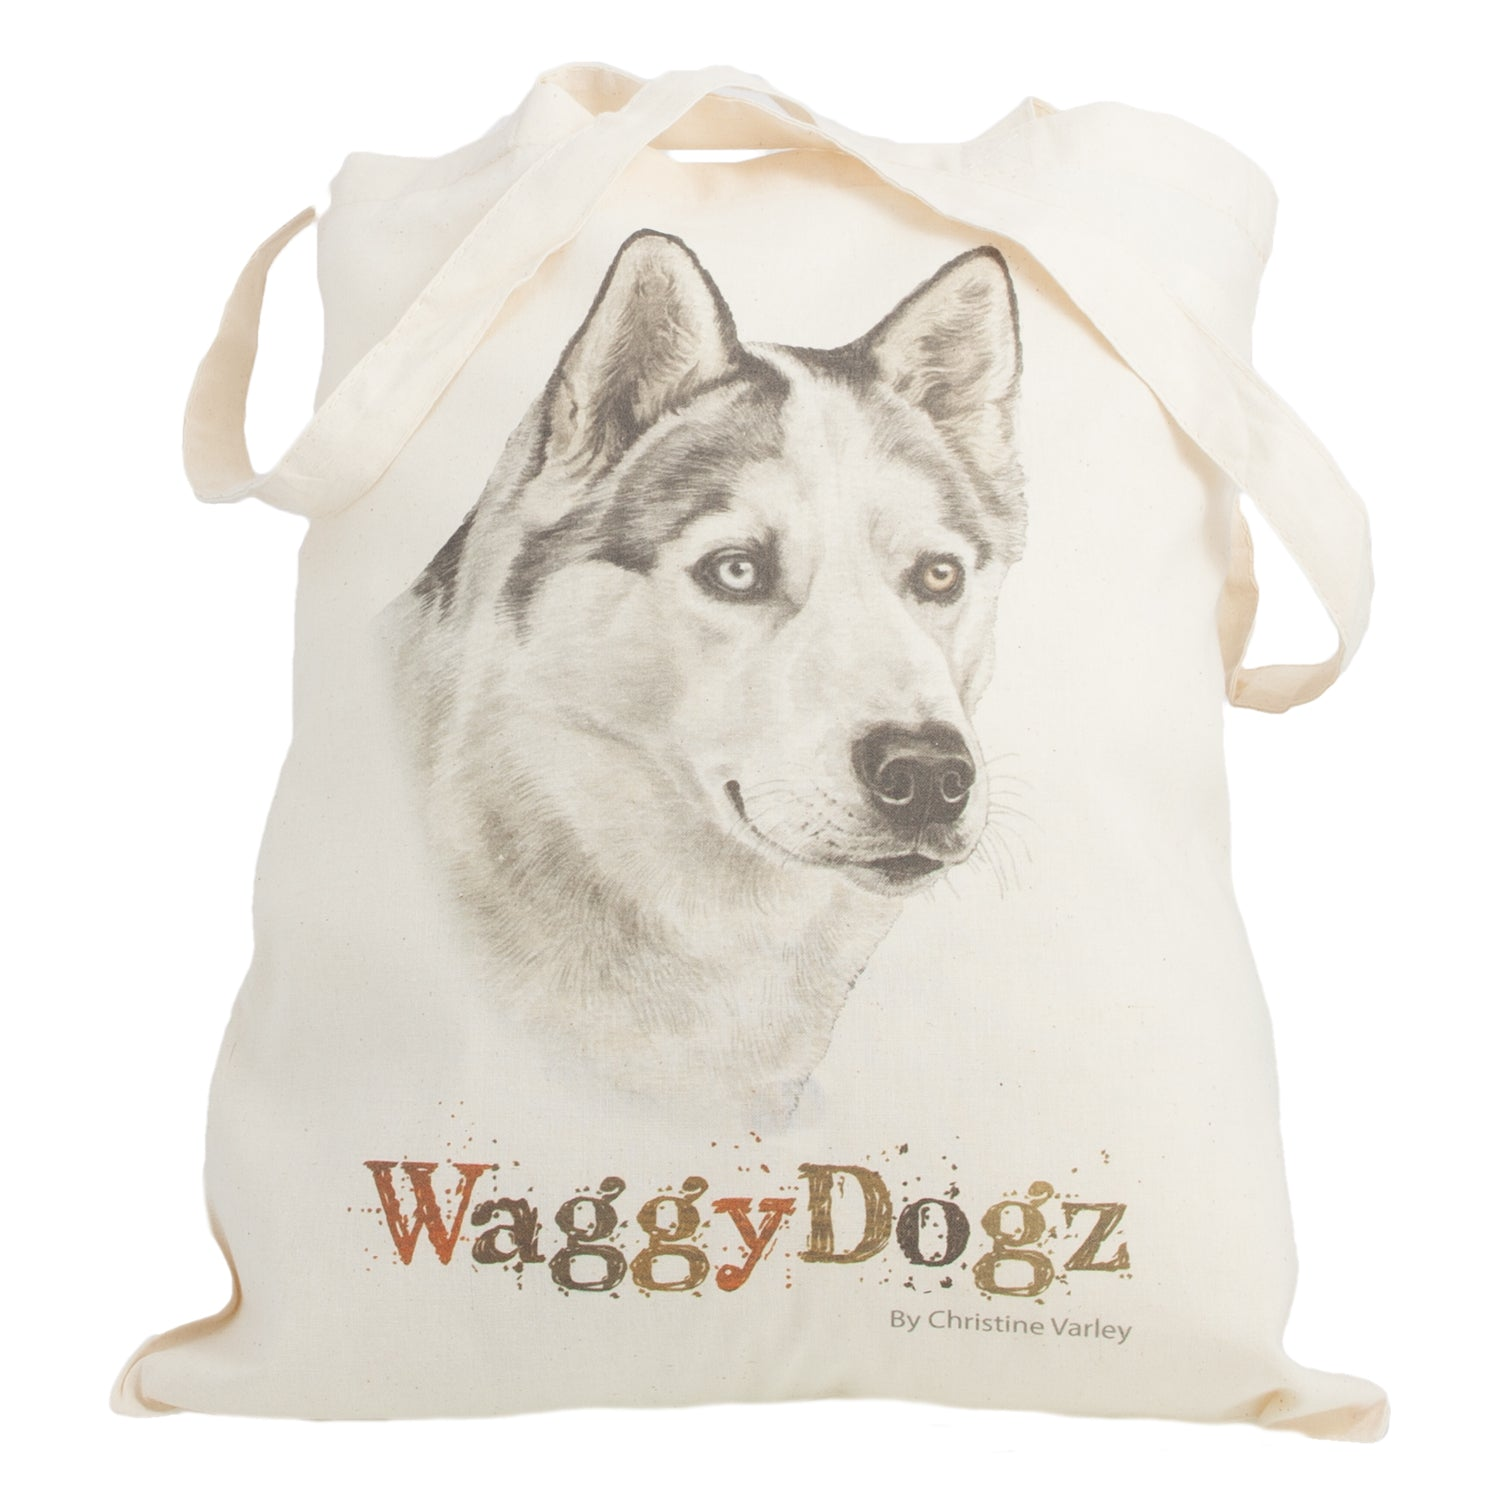 Dog Lover Gifts available at Dog Krazy Gifts. Husky Tote Bag, part of our Christine Varley collection – available at www.dogkrazygifts.co.uk